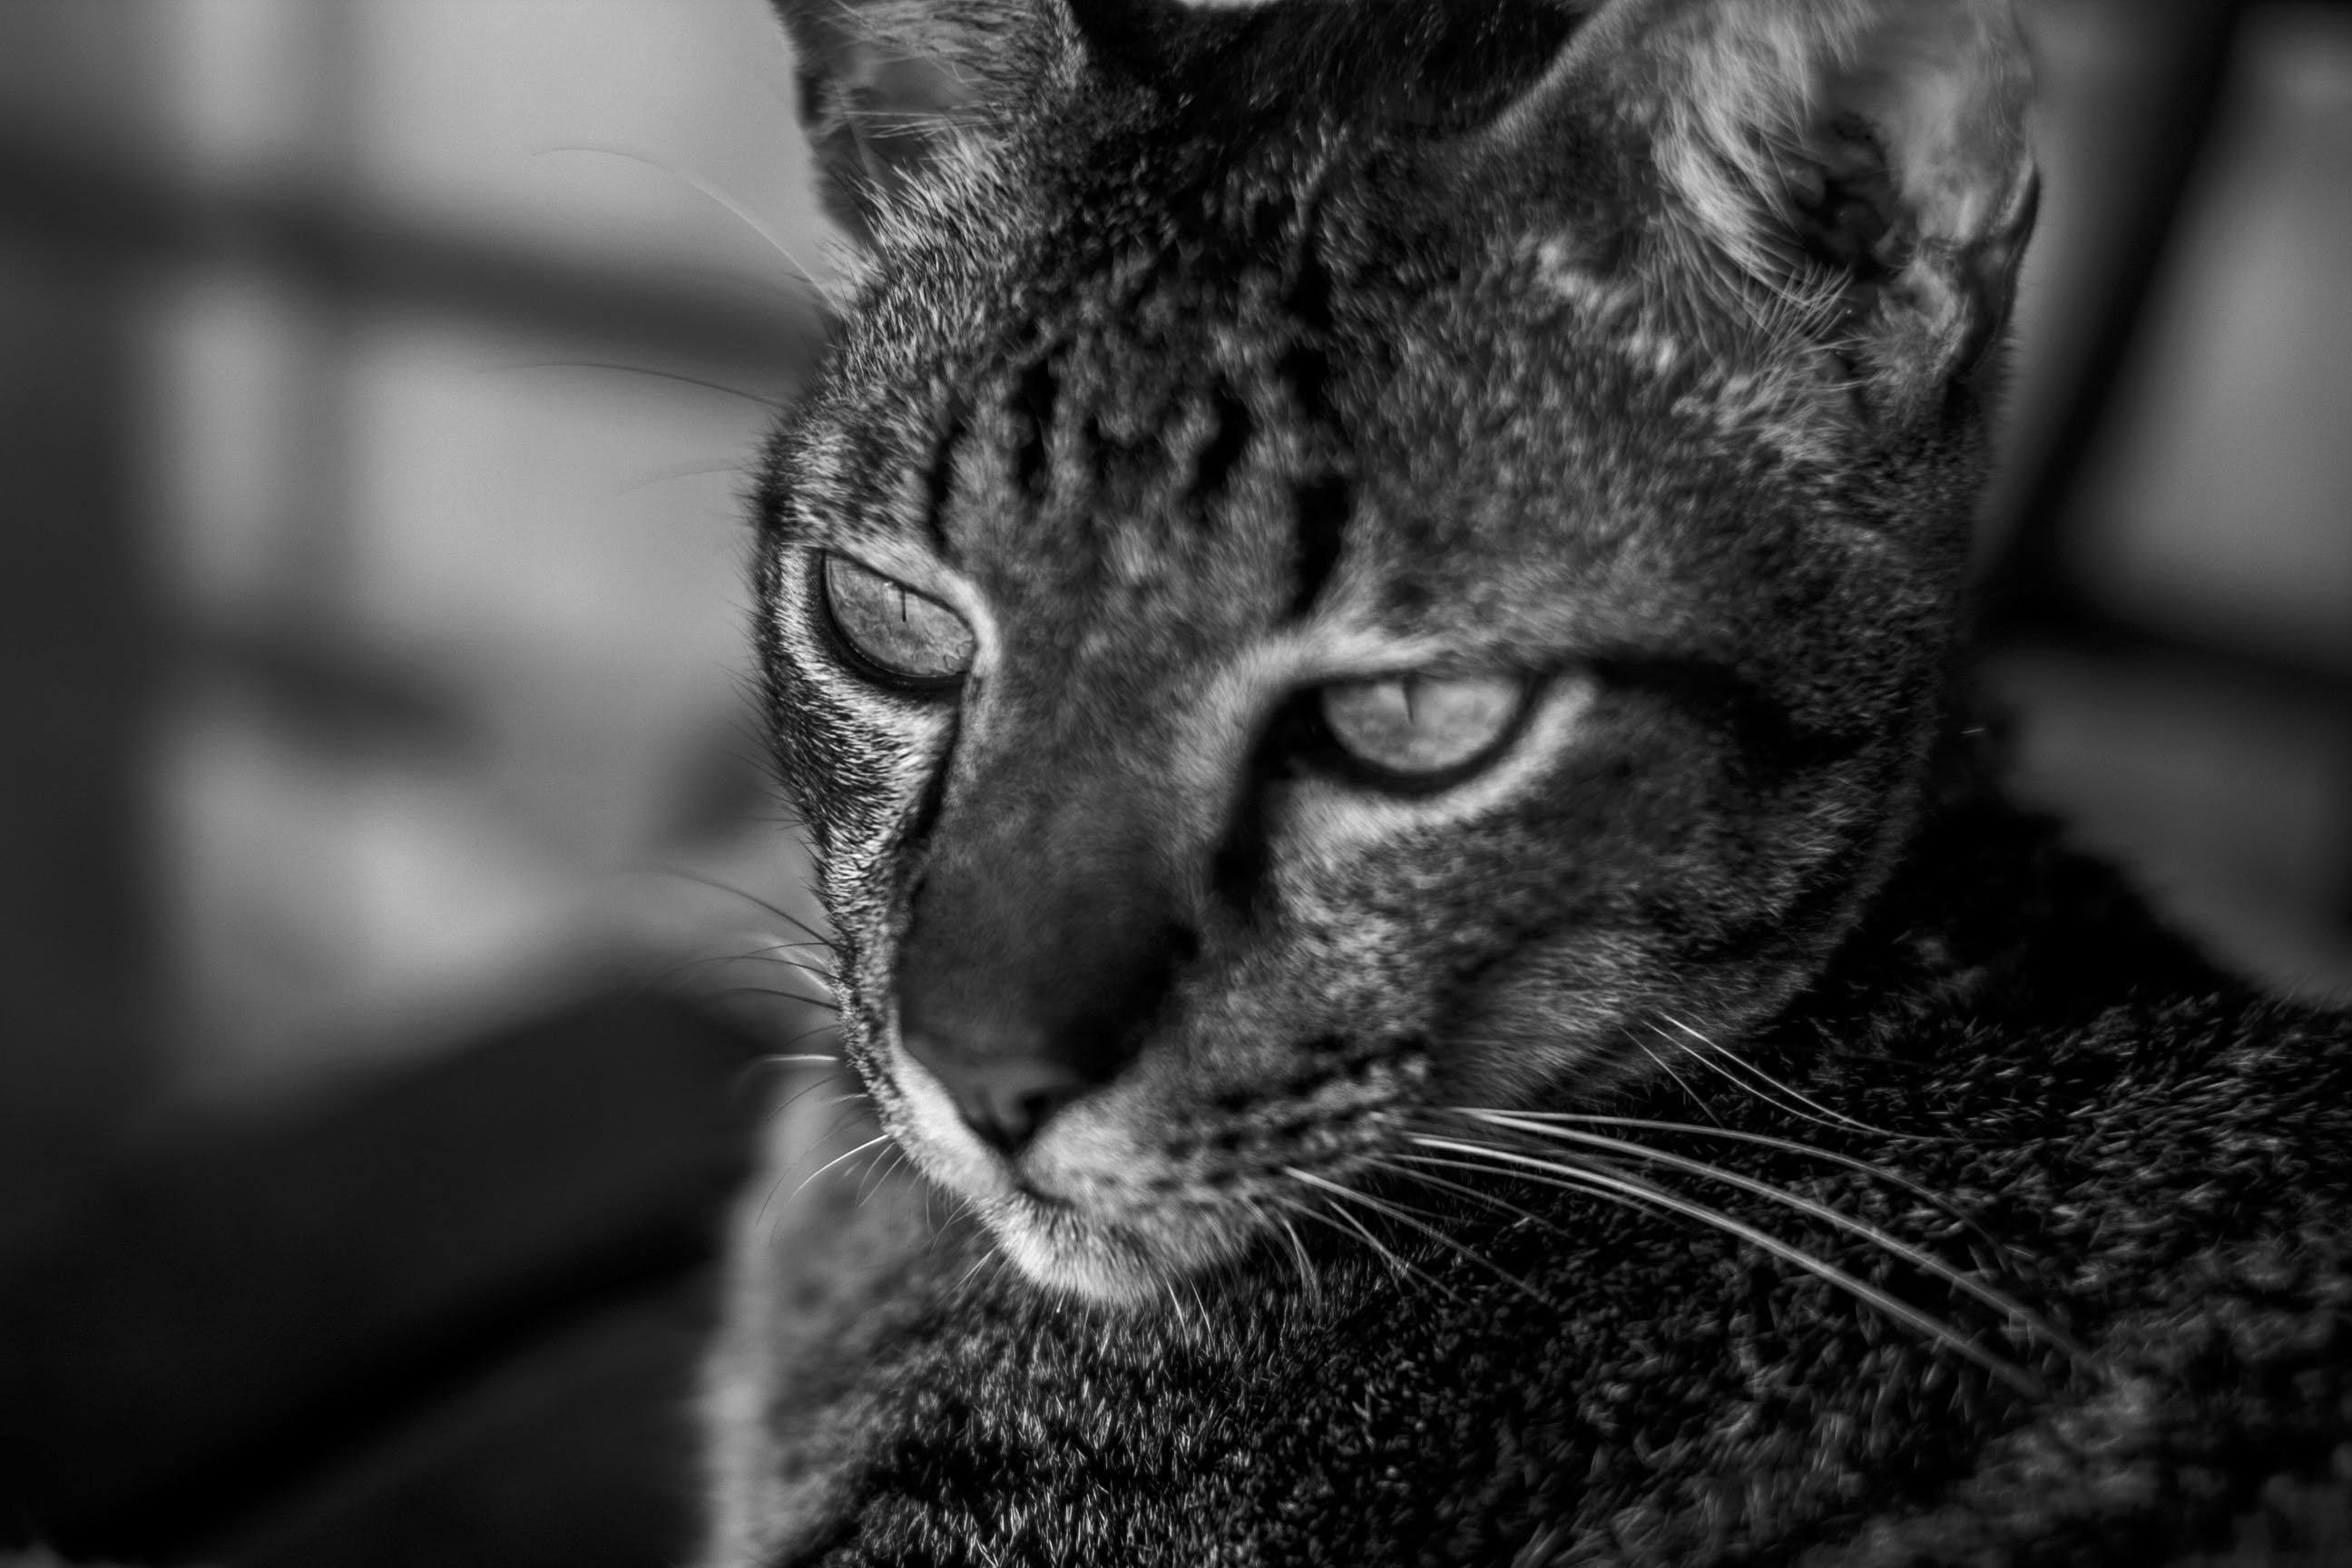 Monochrome Photo of Cat